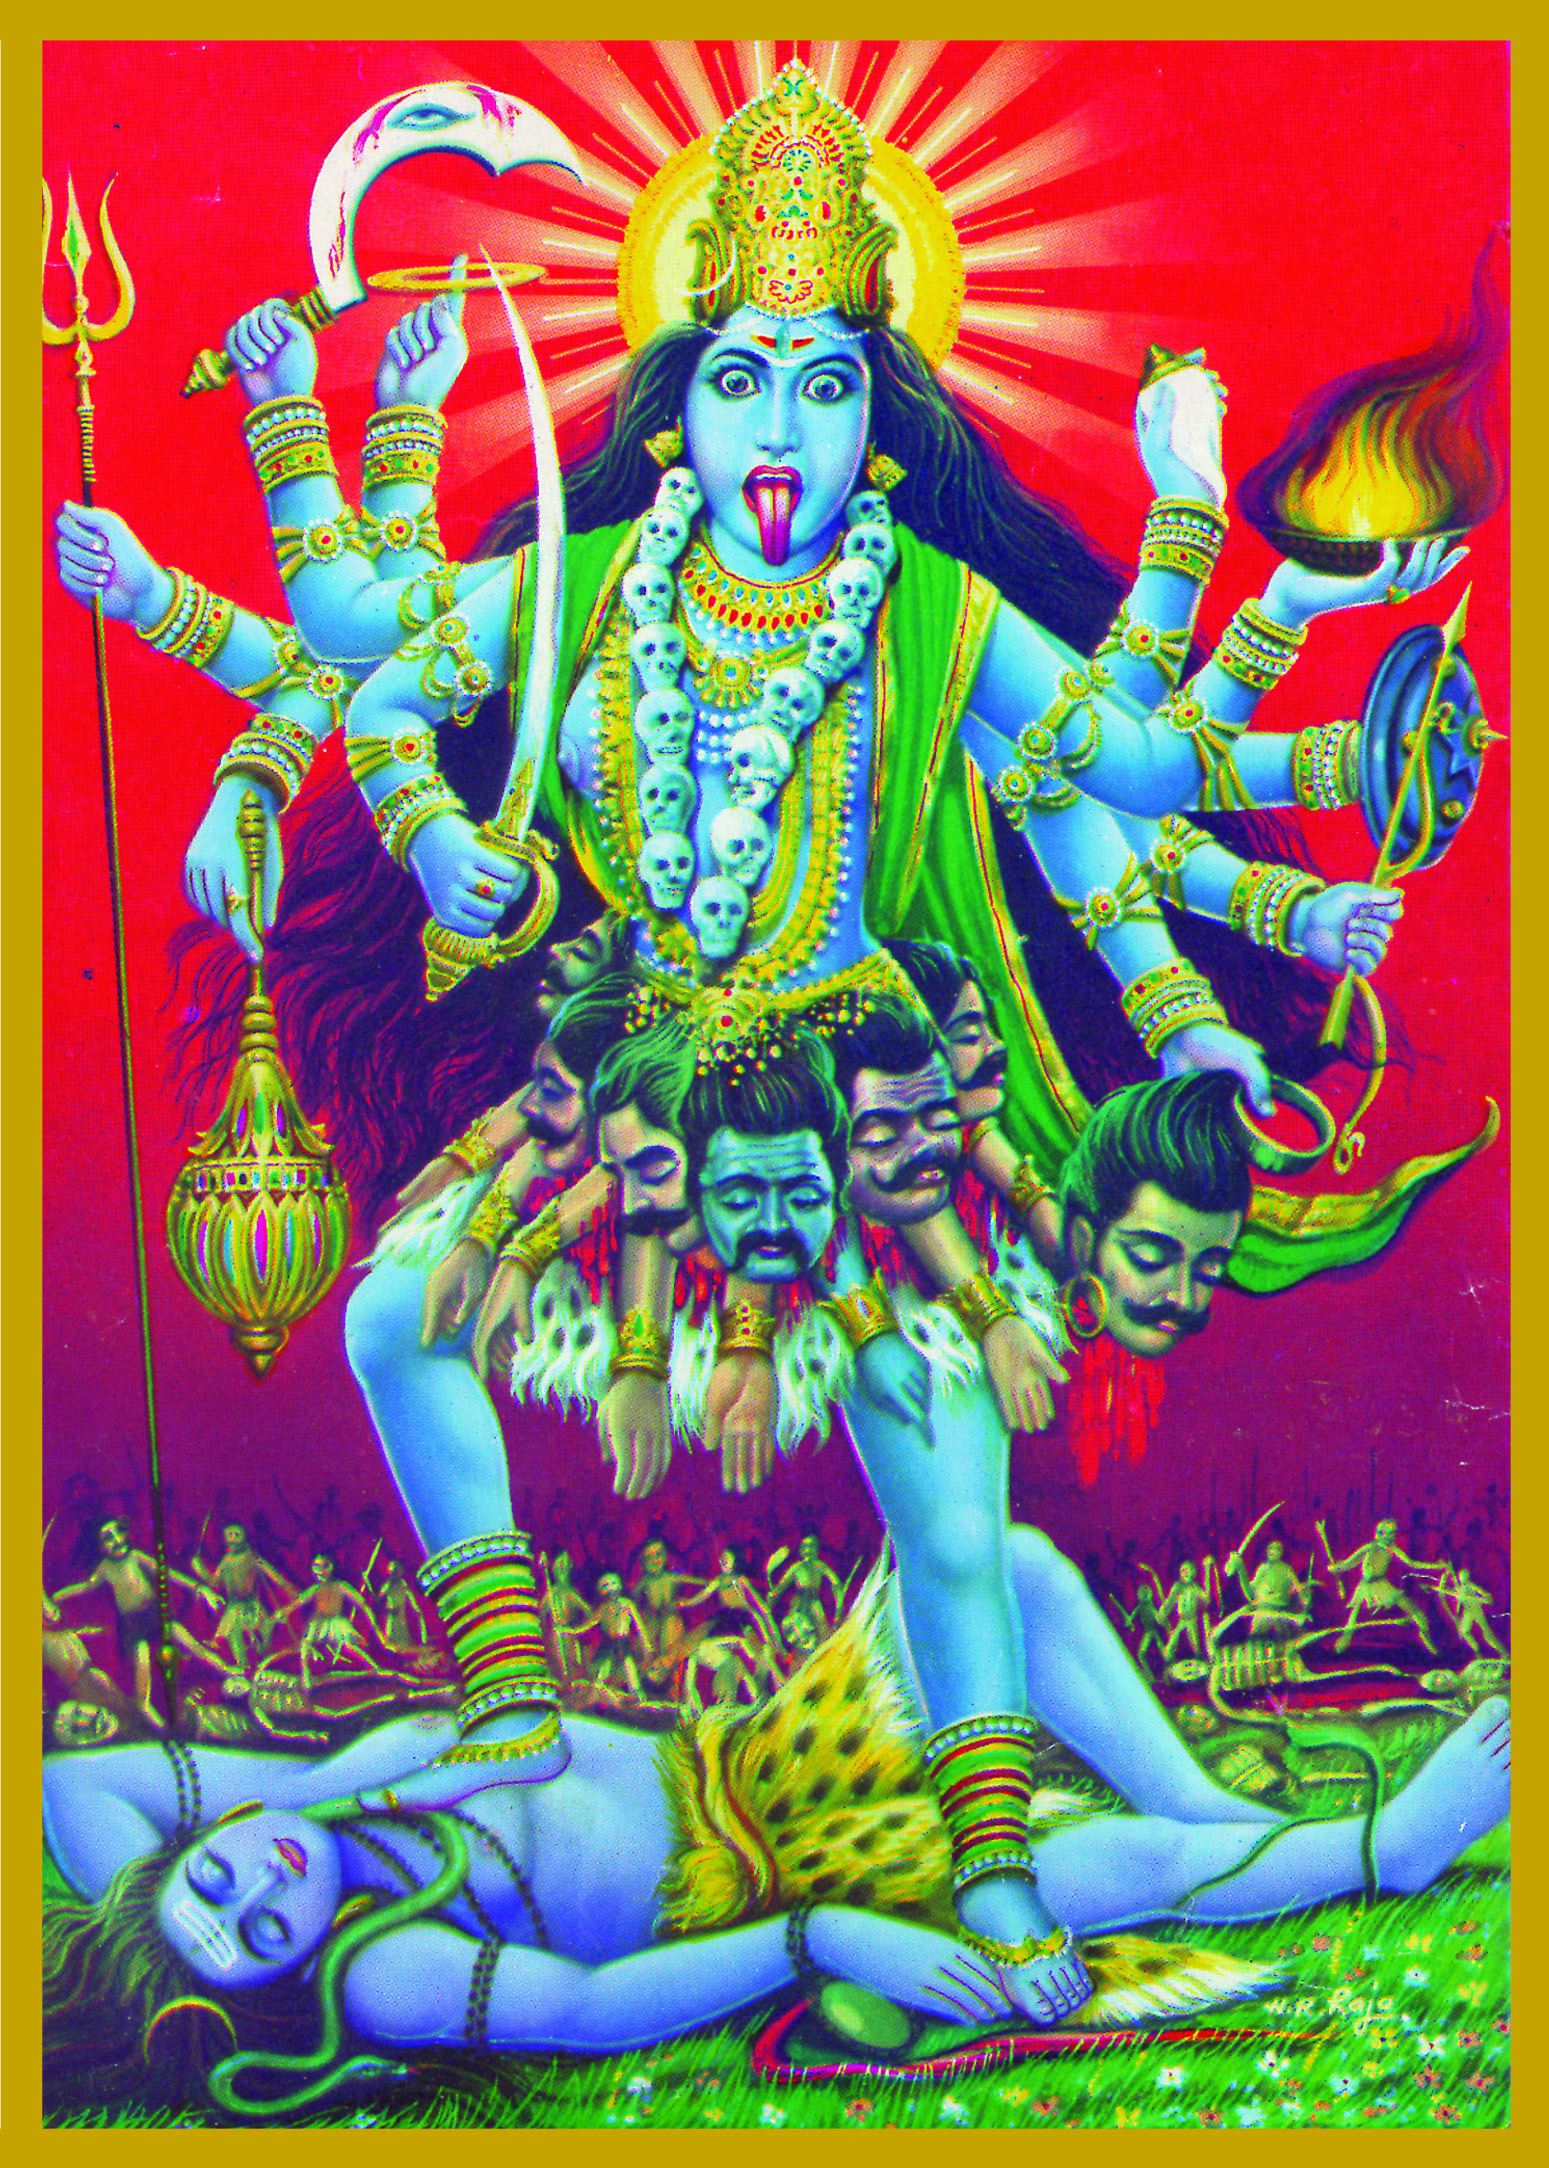 KAL-BLU - BLUE KALISlayer of Time & Death, Destroyer of IllusionKali literally means both 'death' and 'time.' Goddess Kali represents the state where time, space and causation have disappeared.She is both the destroyer and creatrix and is the consort of Lord Shiva. Durga is Kali's mother.